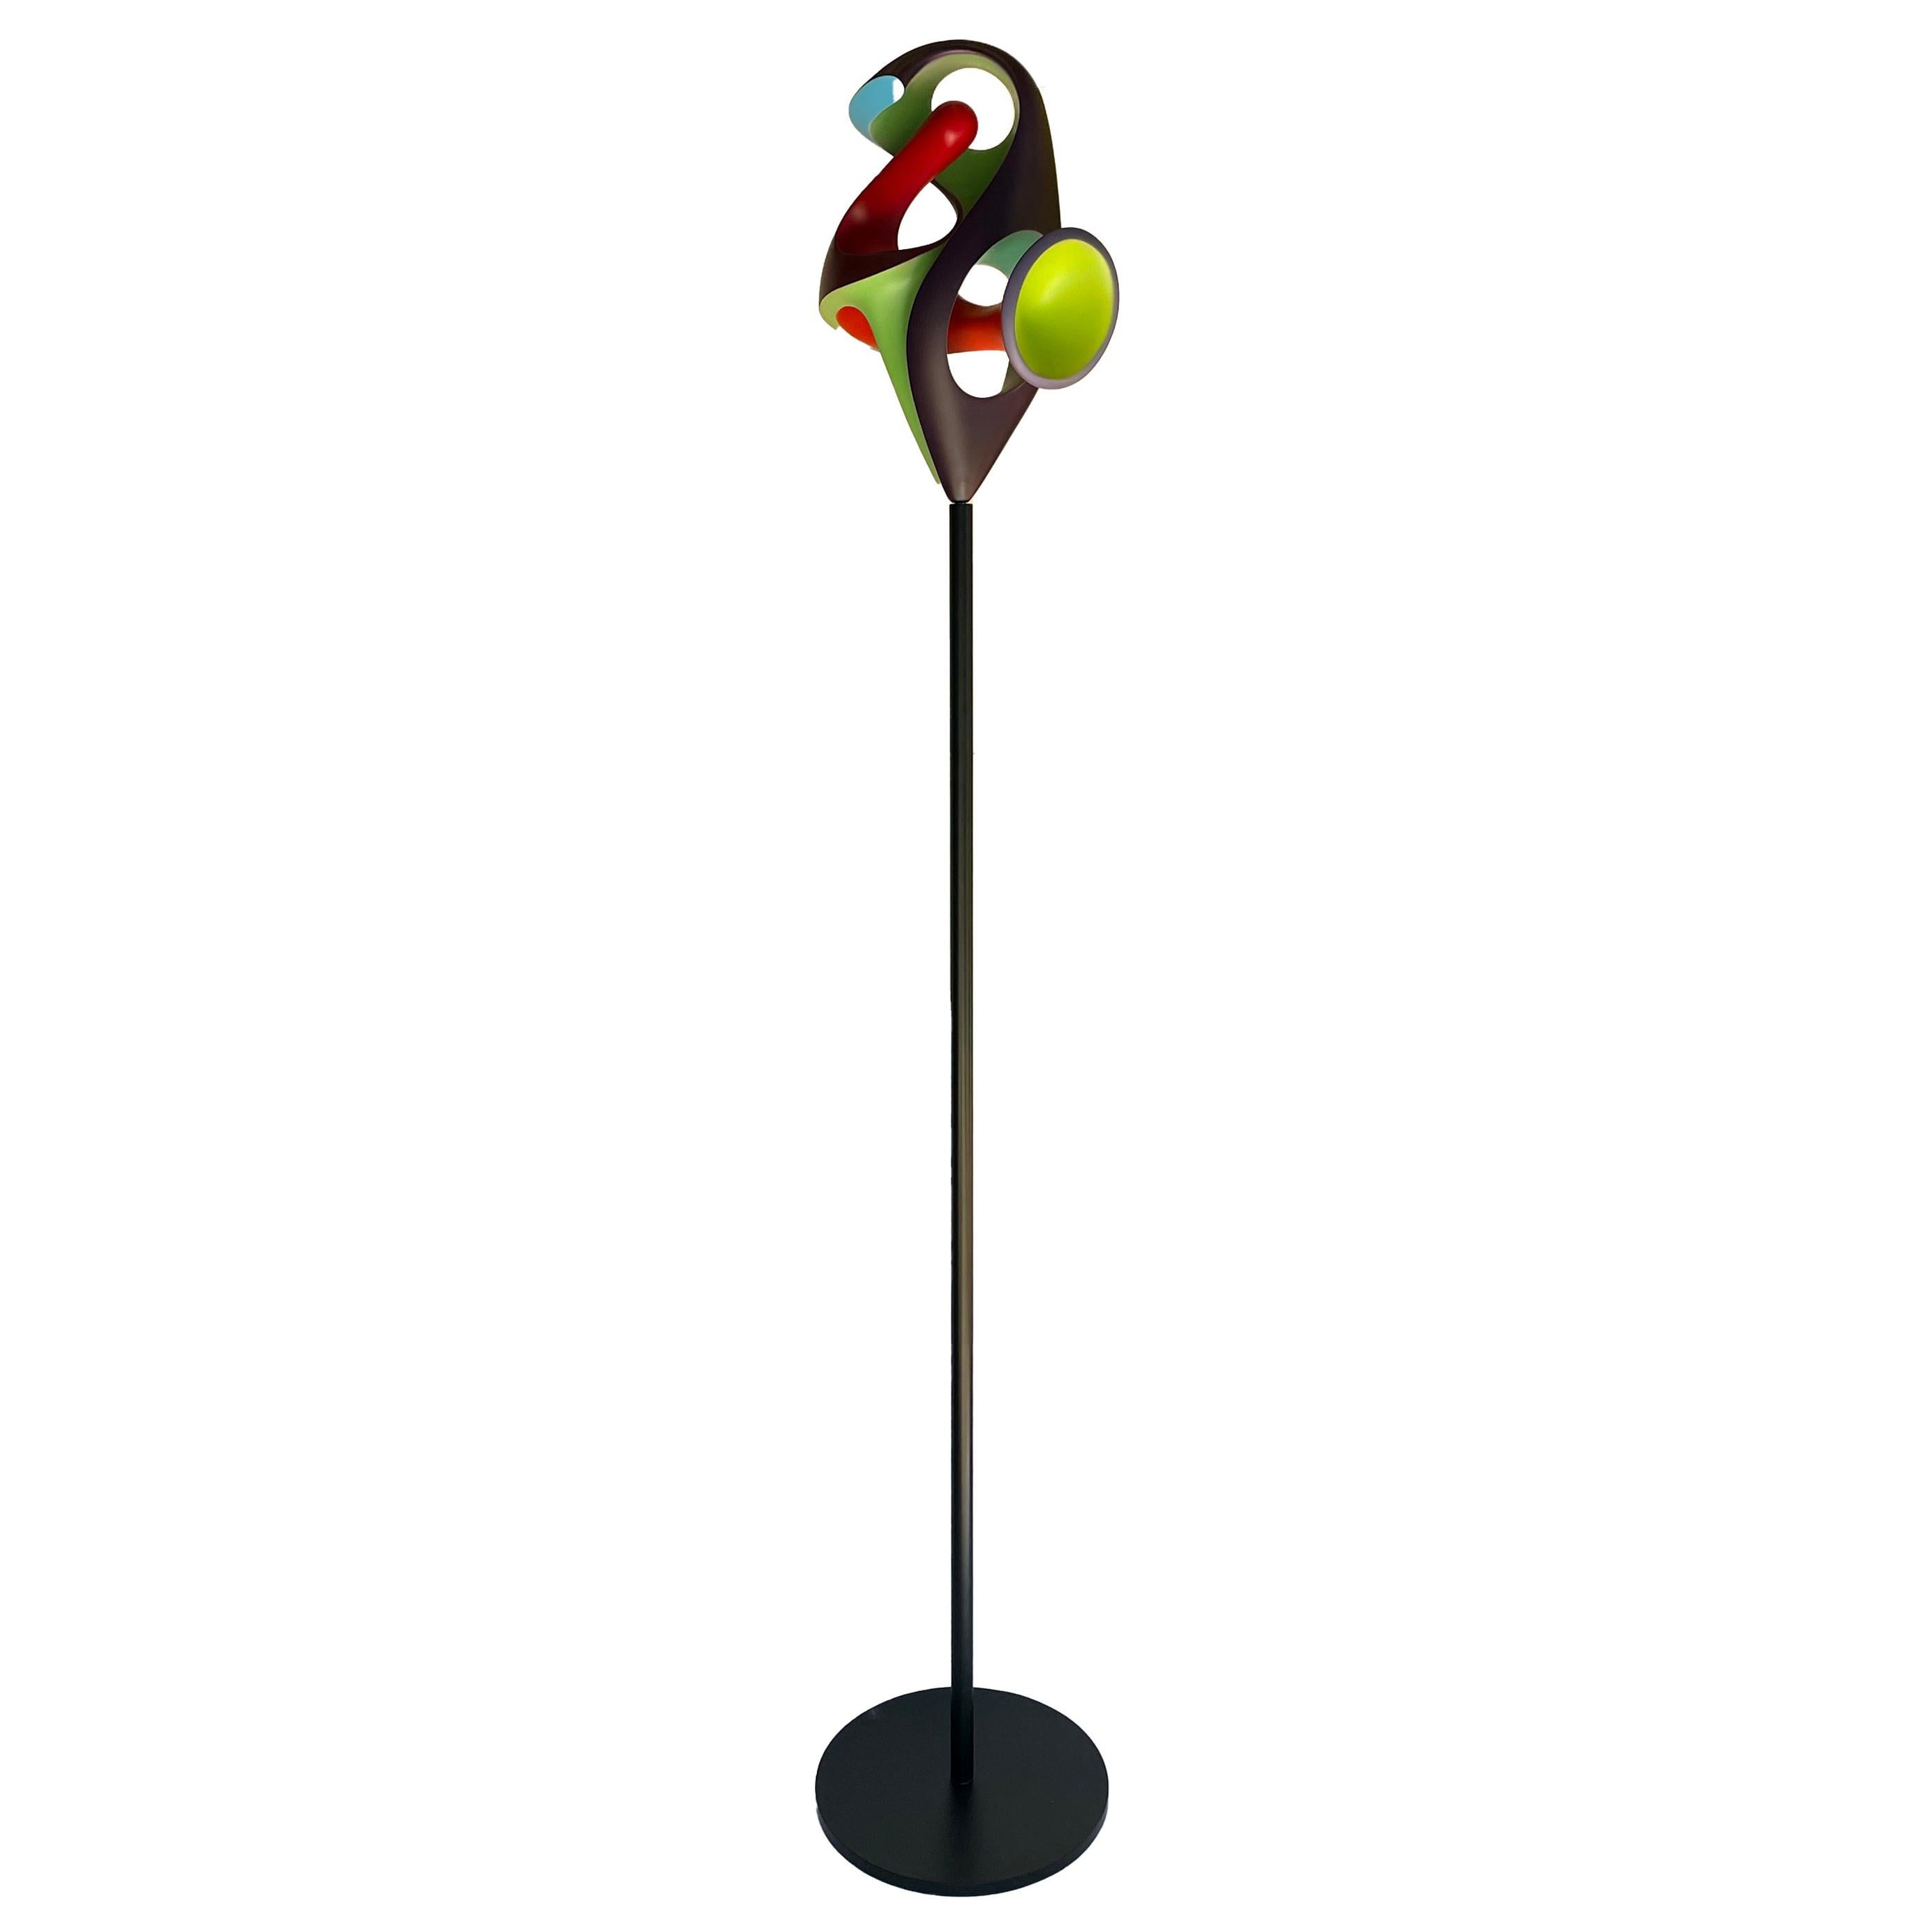 Chrysalis, Abstract Sculpture, Brightly Colored Intertwined Geometric Form